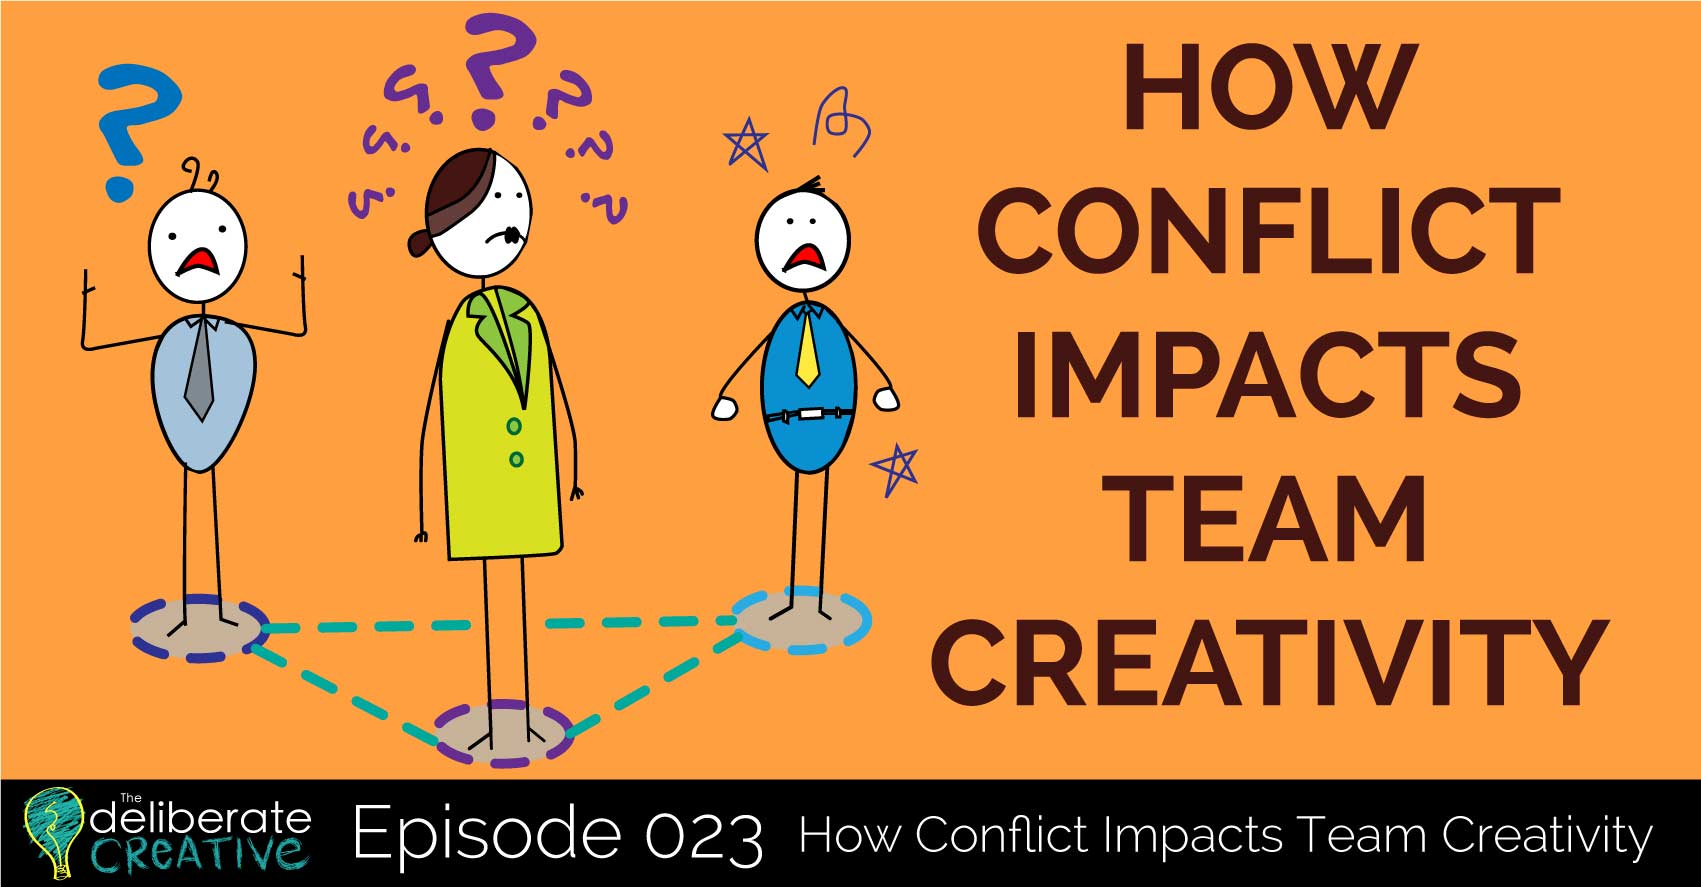 How Conflict Impacts Team Creativity - The Deliberate Creative Podcast Episode 23